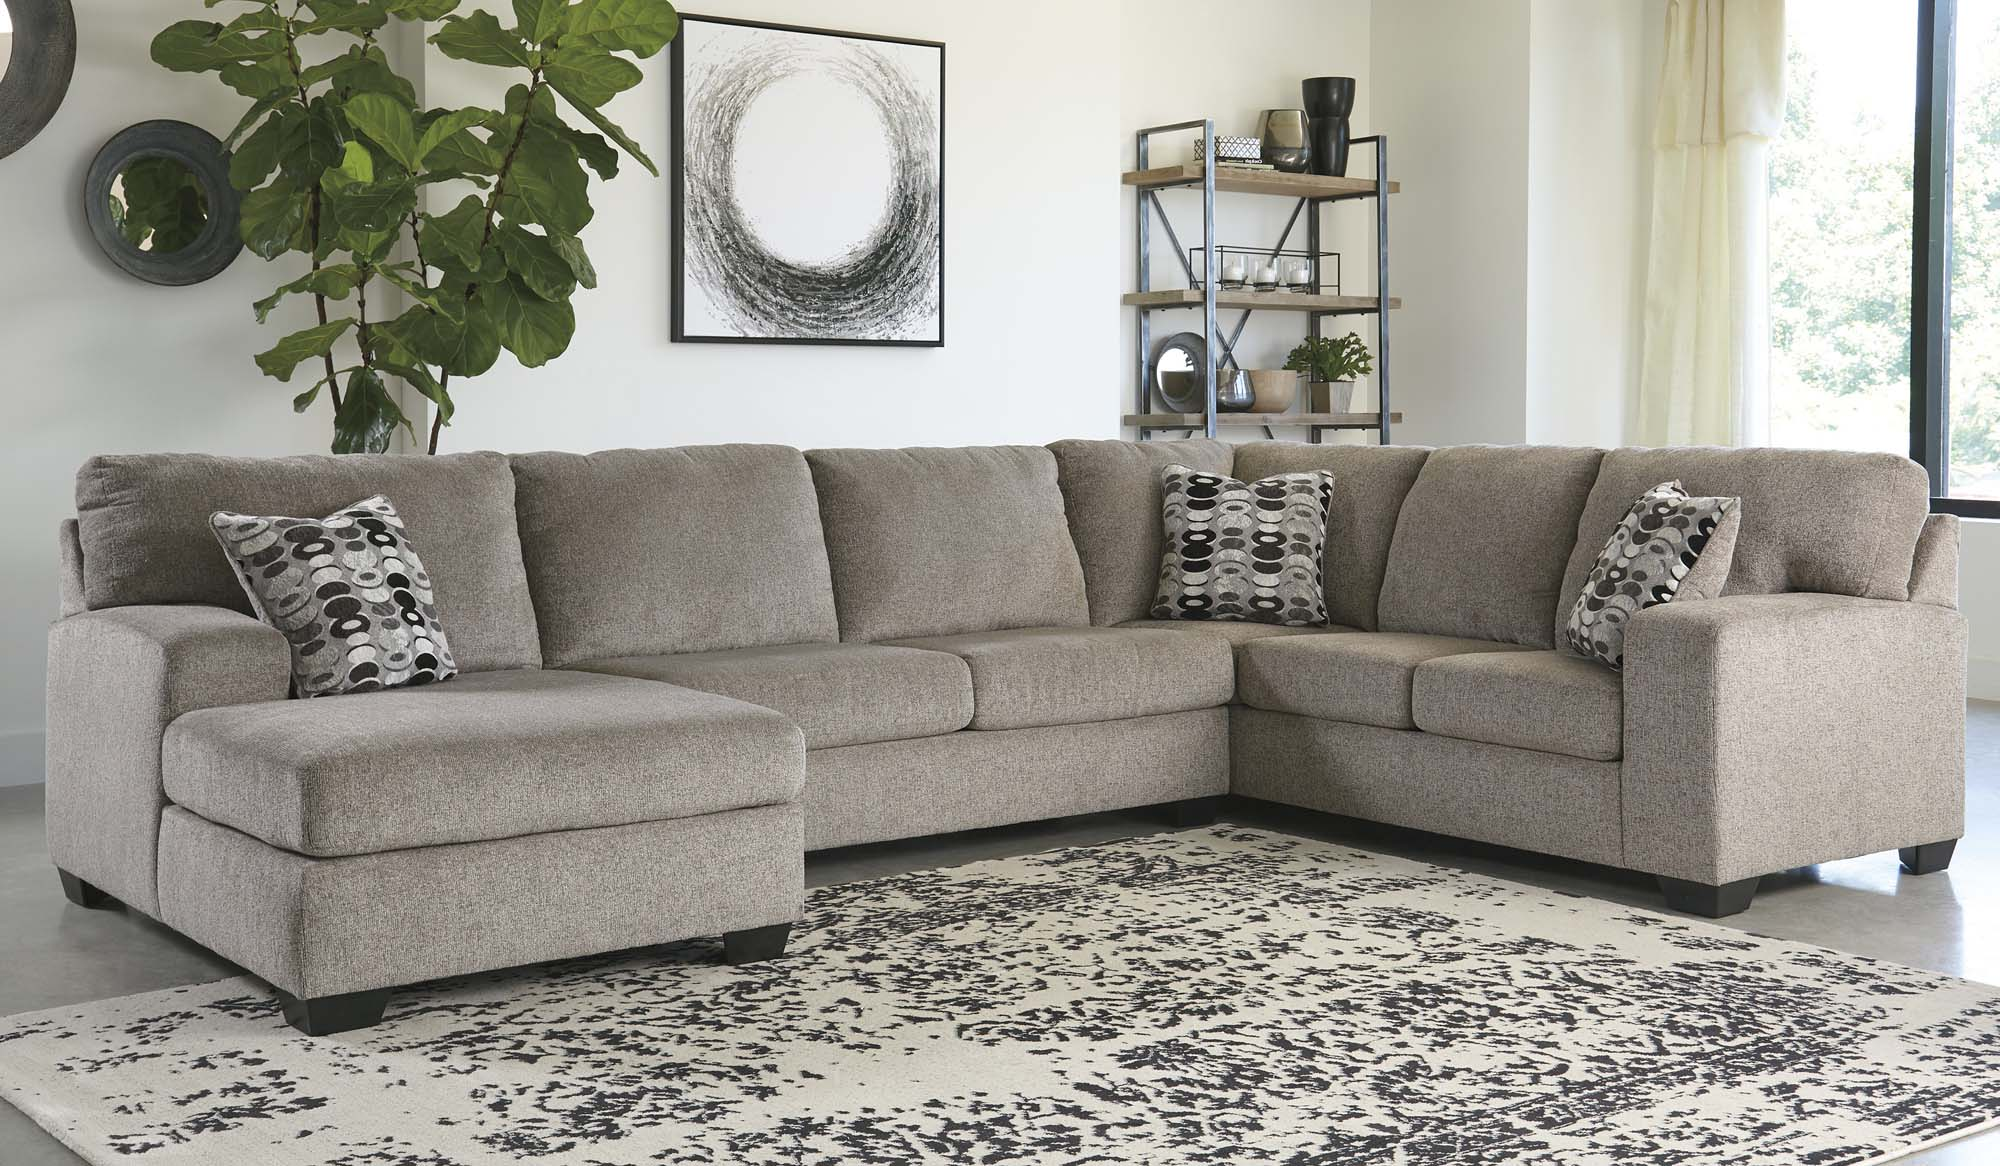 Ballinasloe Platinum 3 Piece Sectional - MJM Furniture